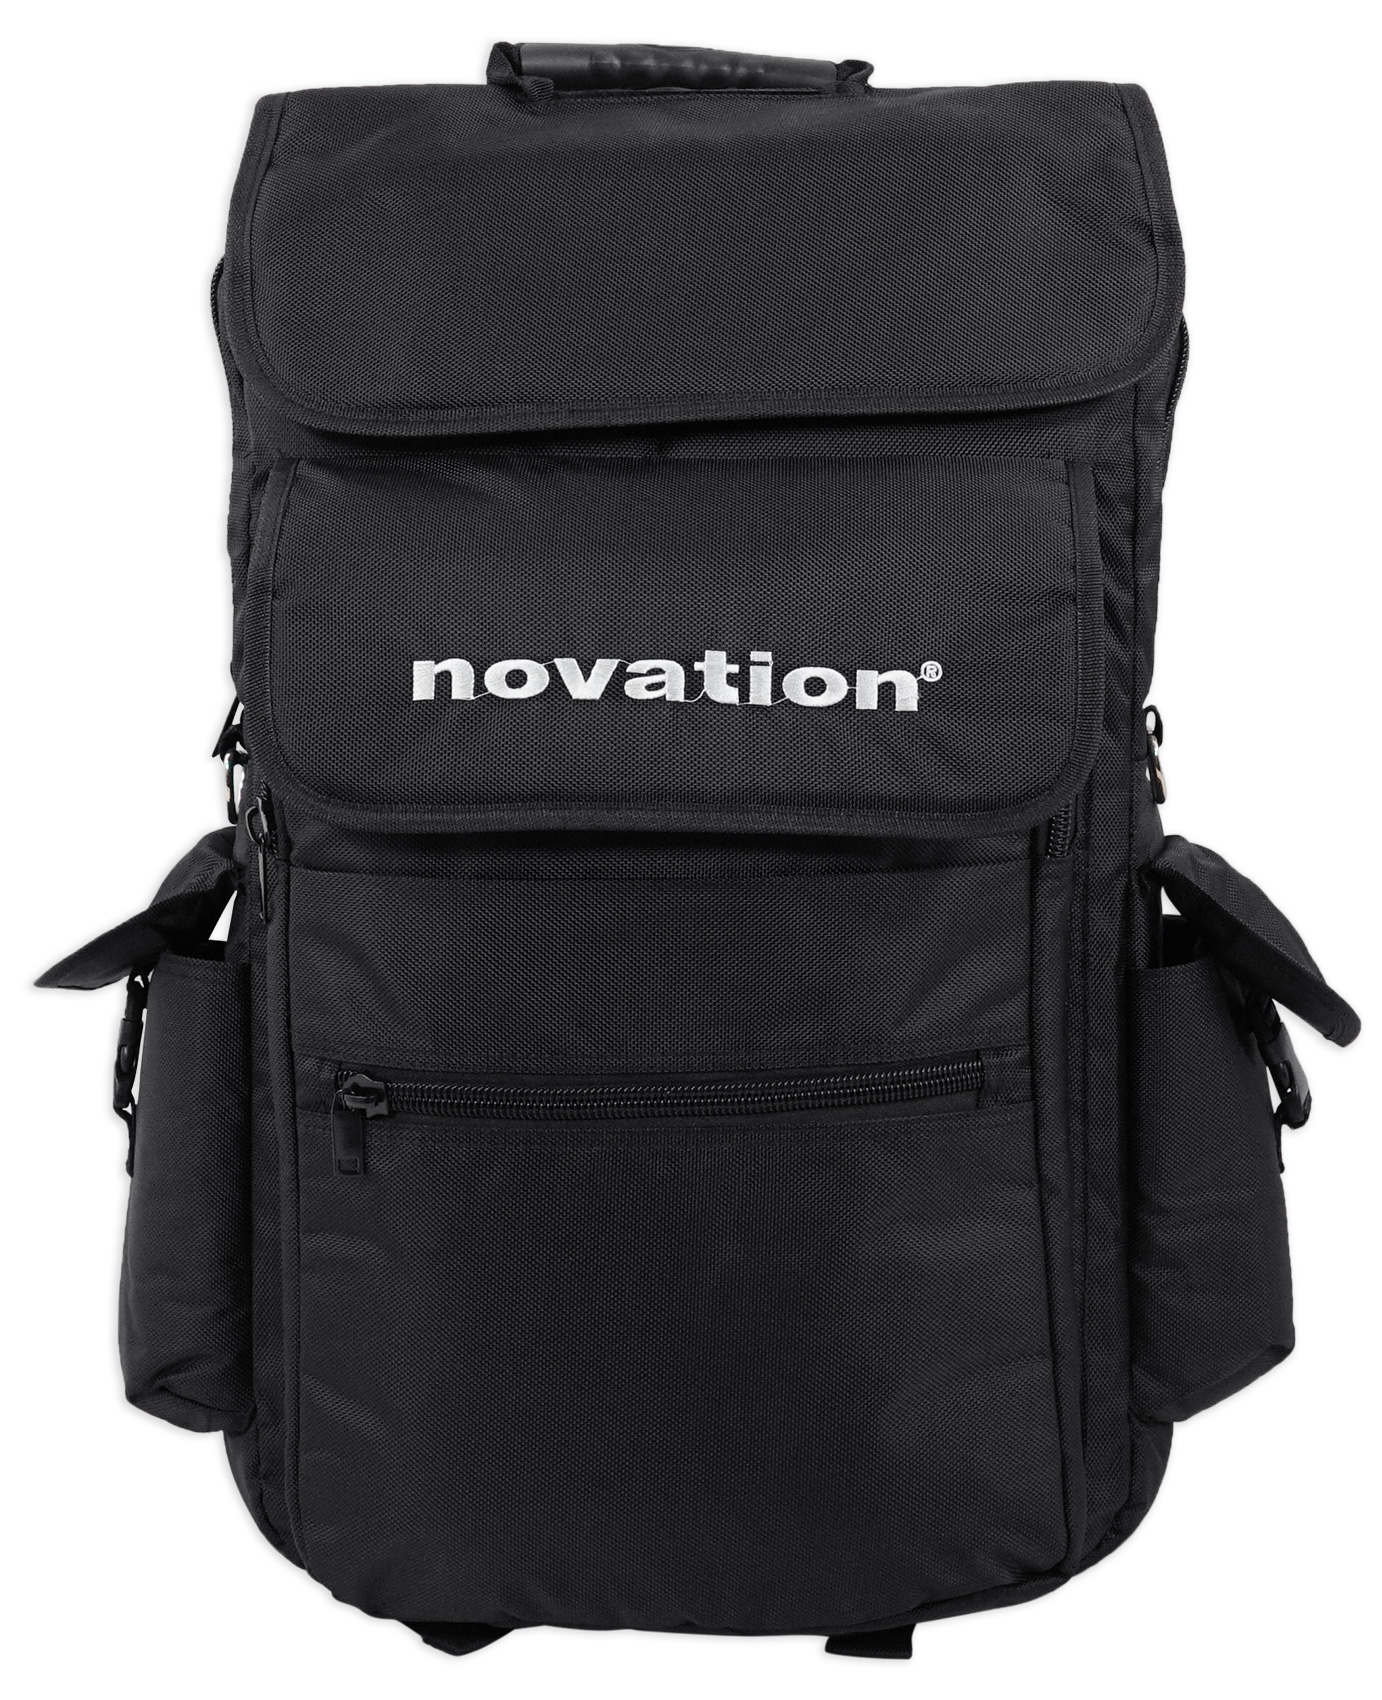 Novation 25-Key Case Soft Carry Bag For Launchkey 25 MIDI Controller Keyboards by NOVATION